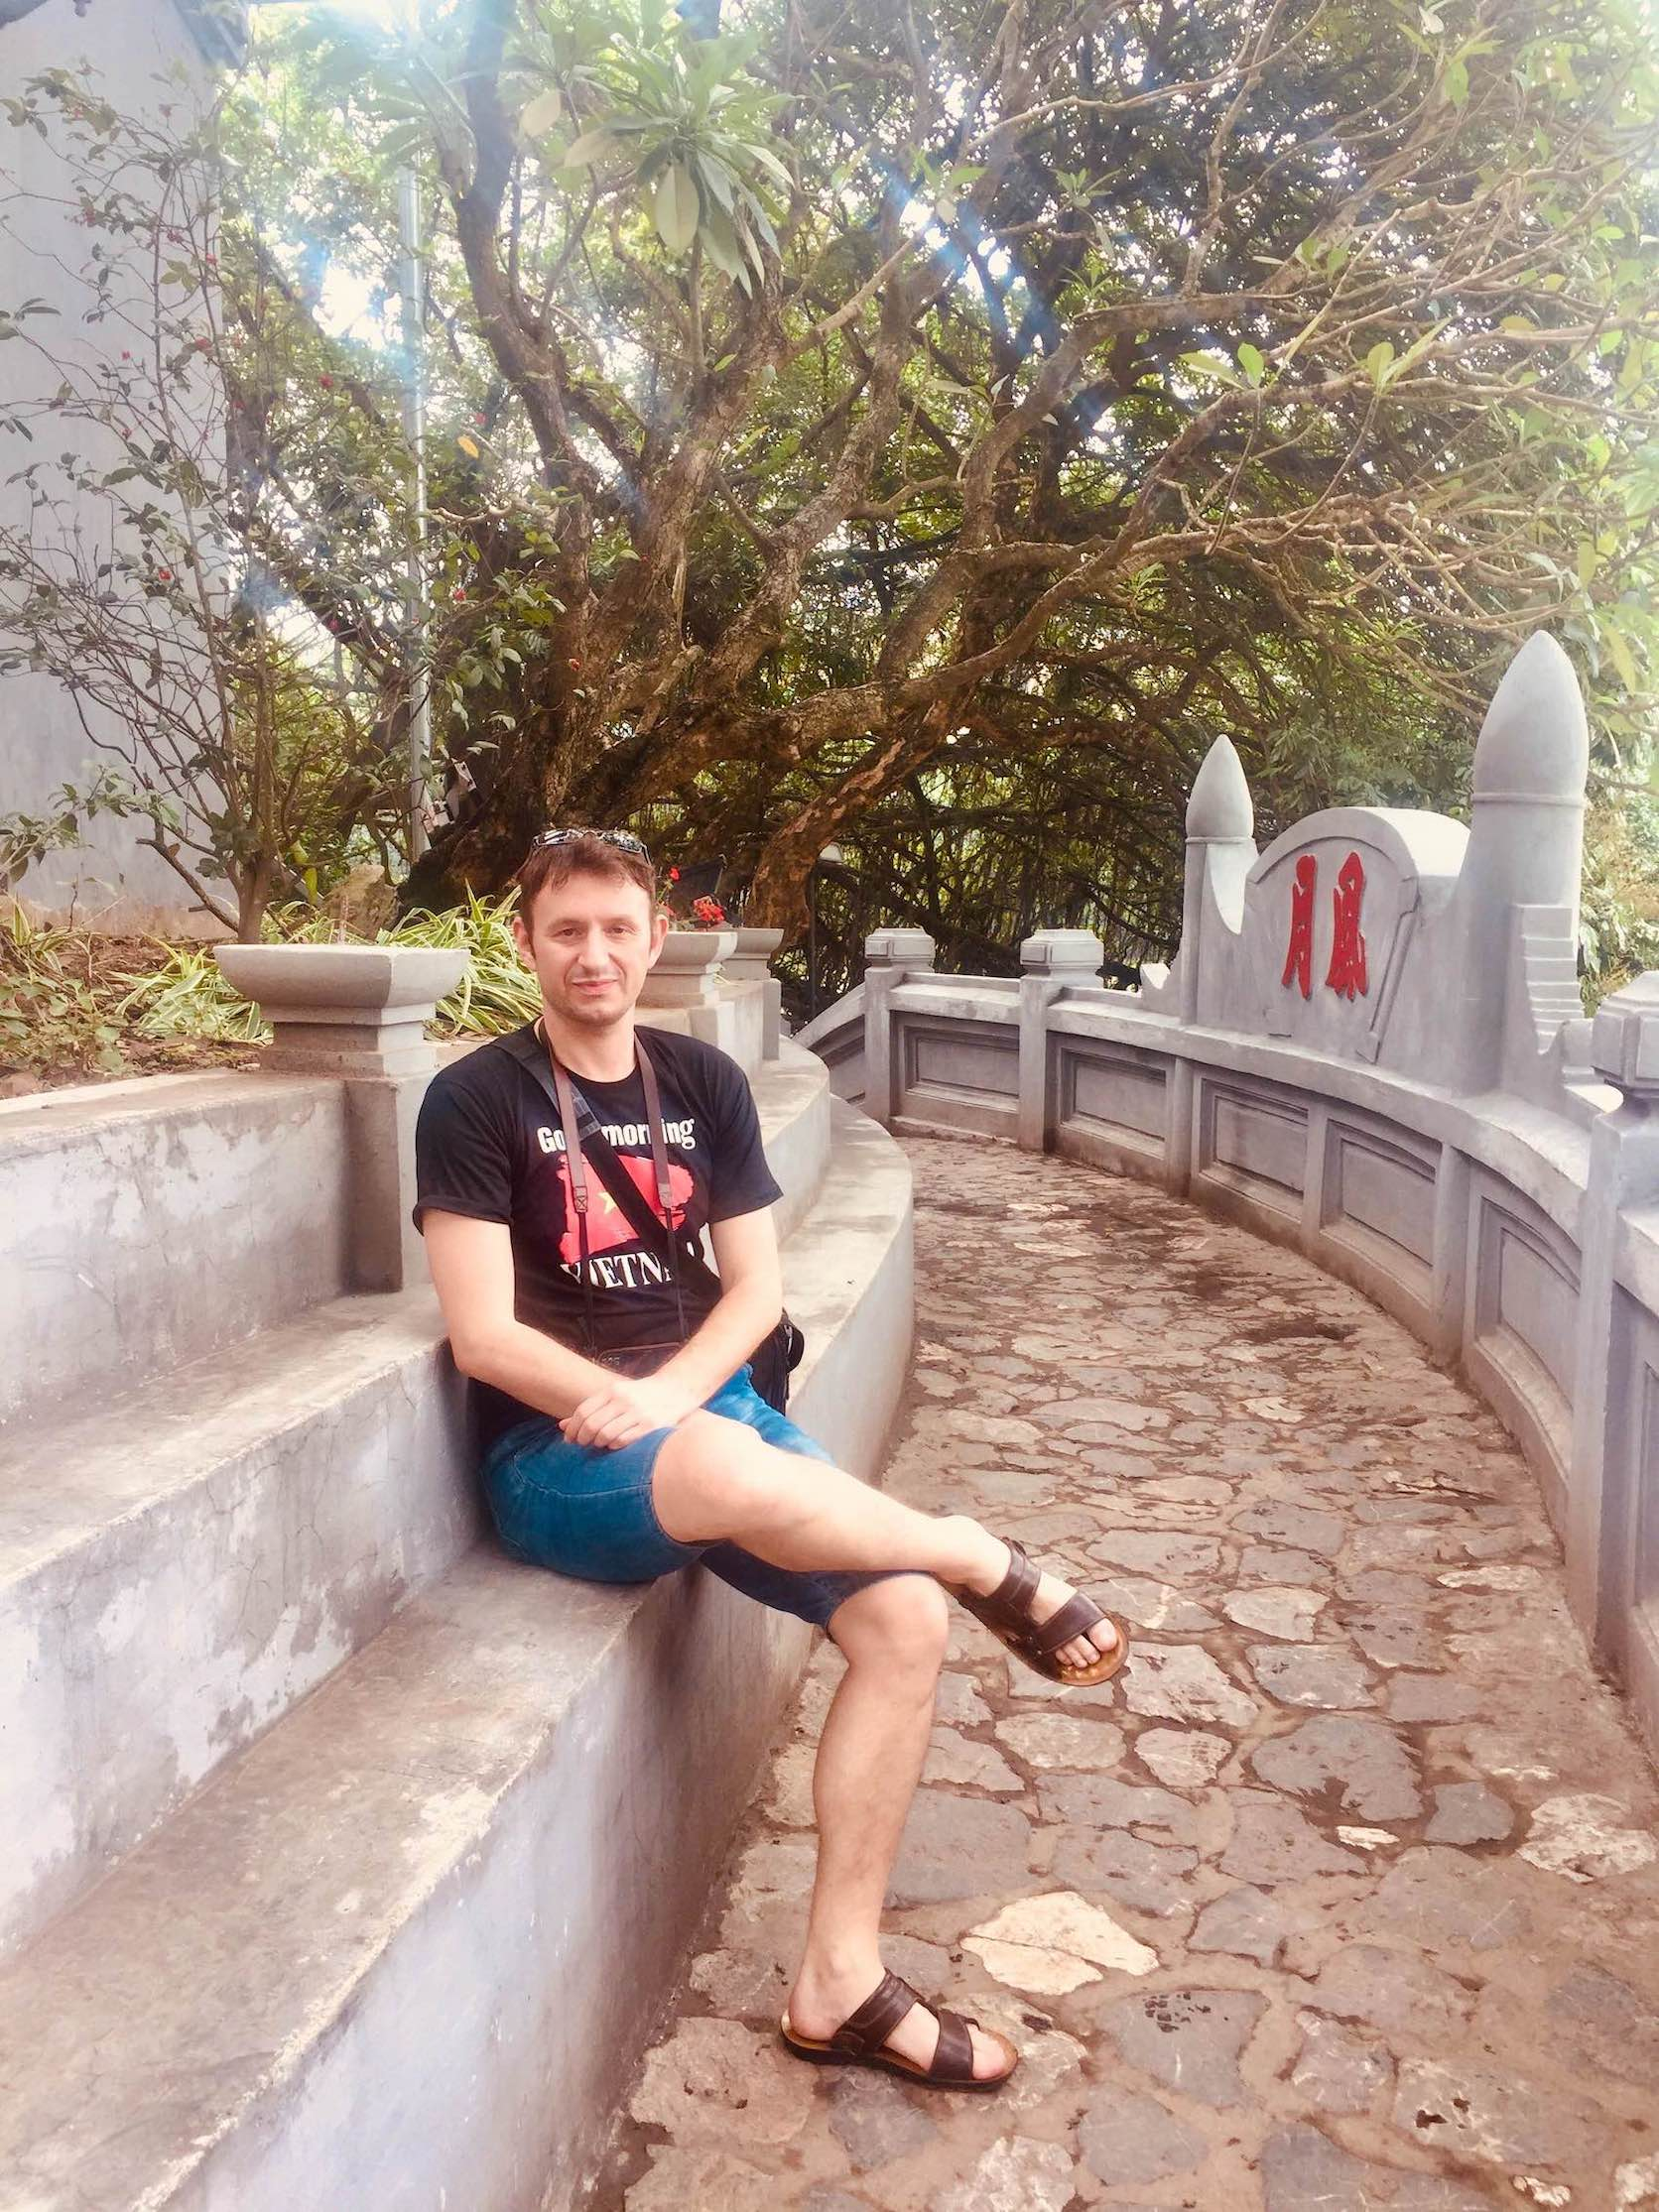 Hanging out at Ngoc Son Temple in Hanoi